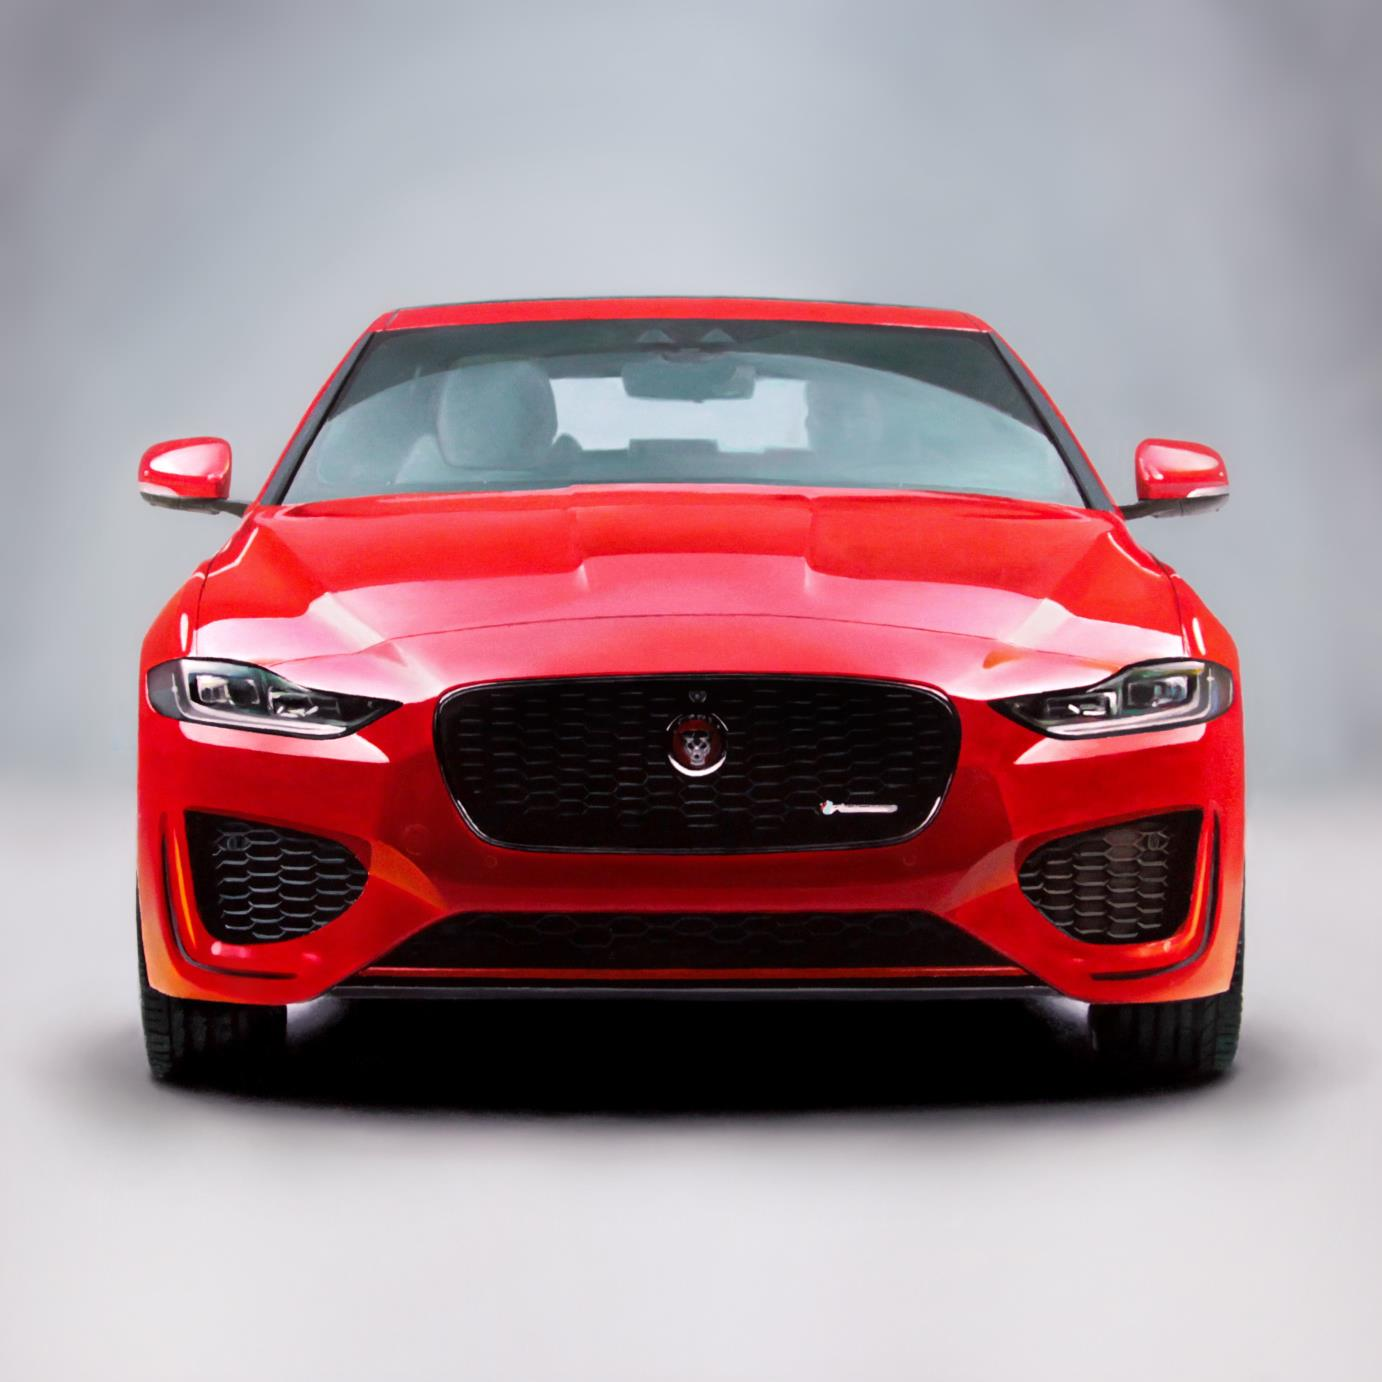 2020 Jaguar XE Sedan Art